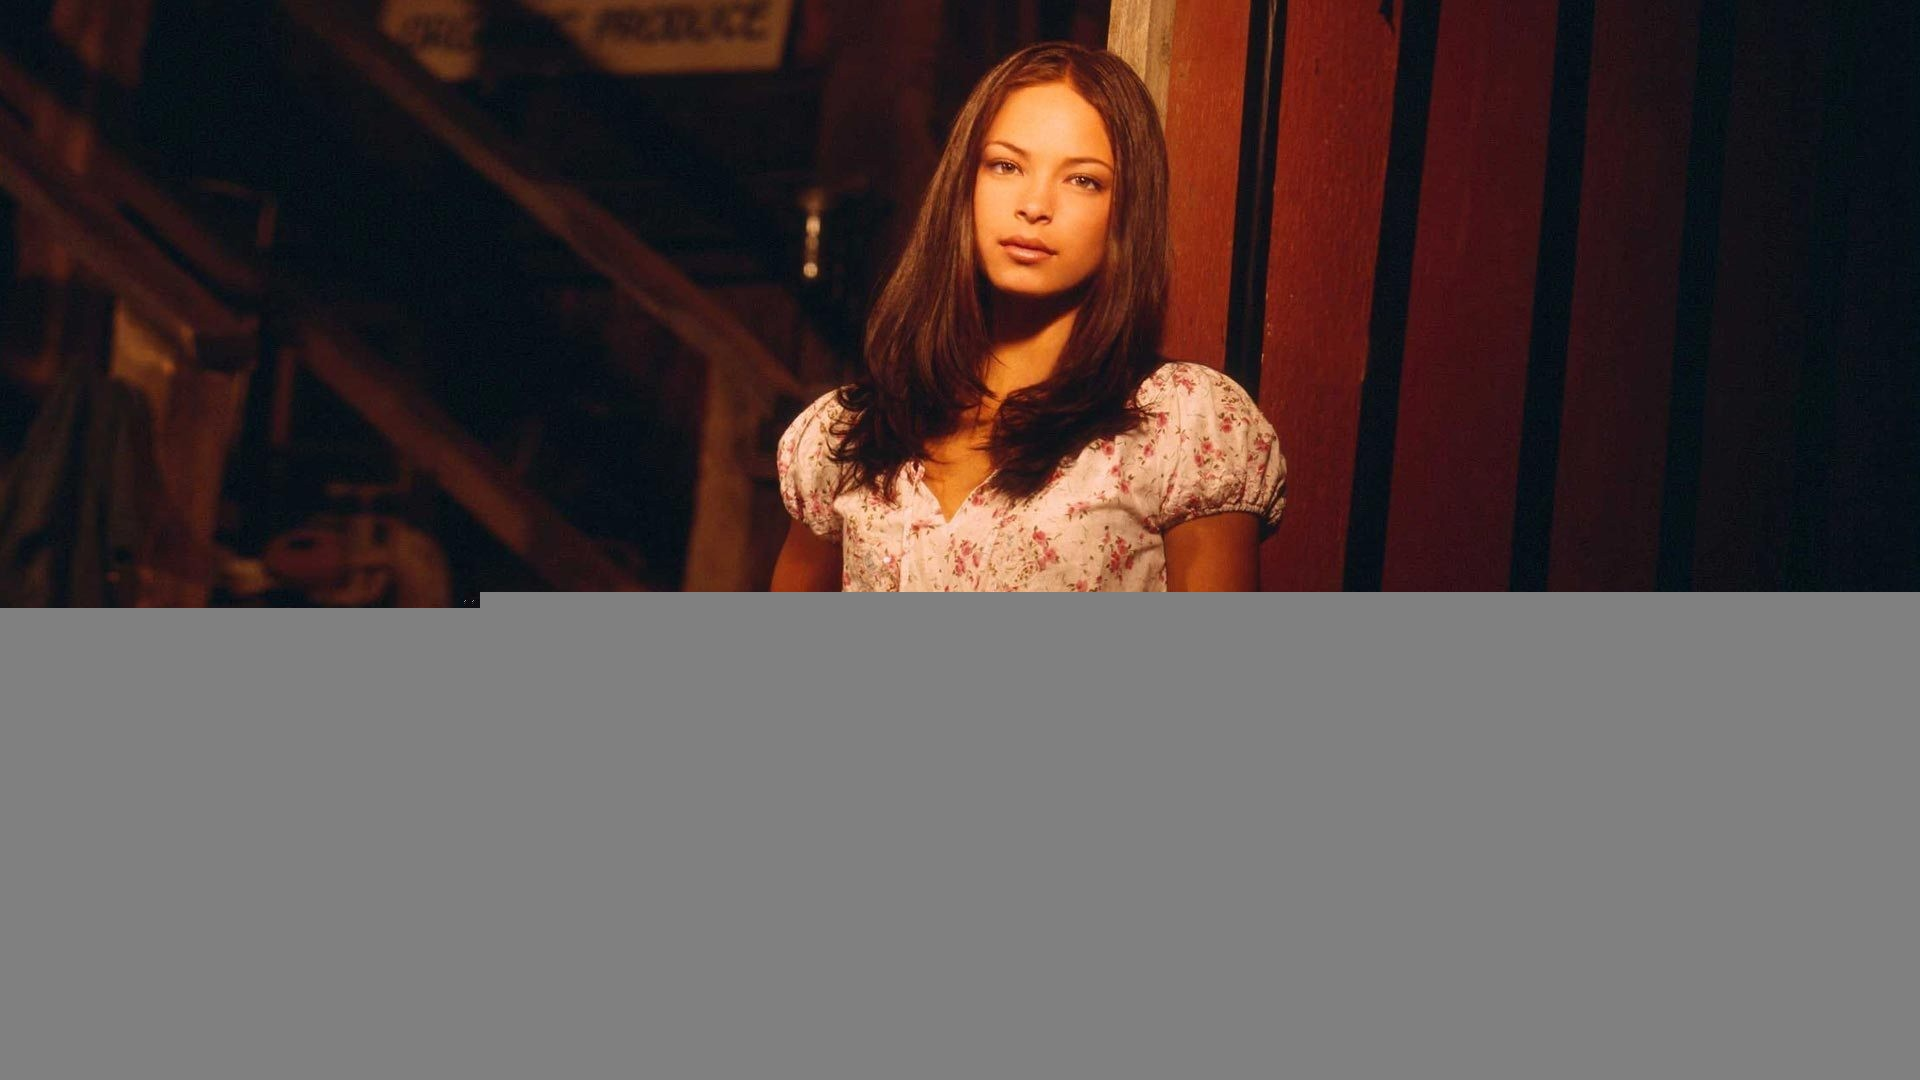 brunettes woman Kristin Kreuk HD Wallpaper